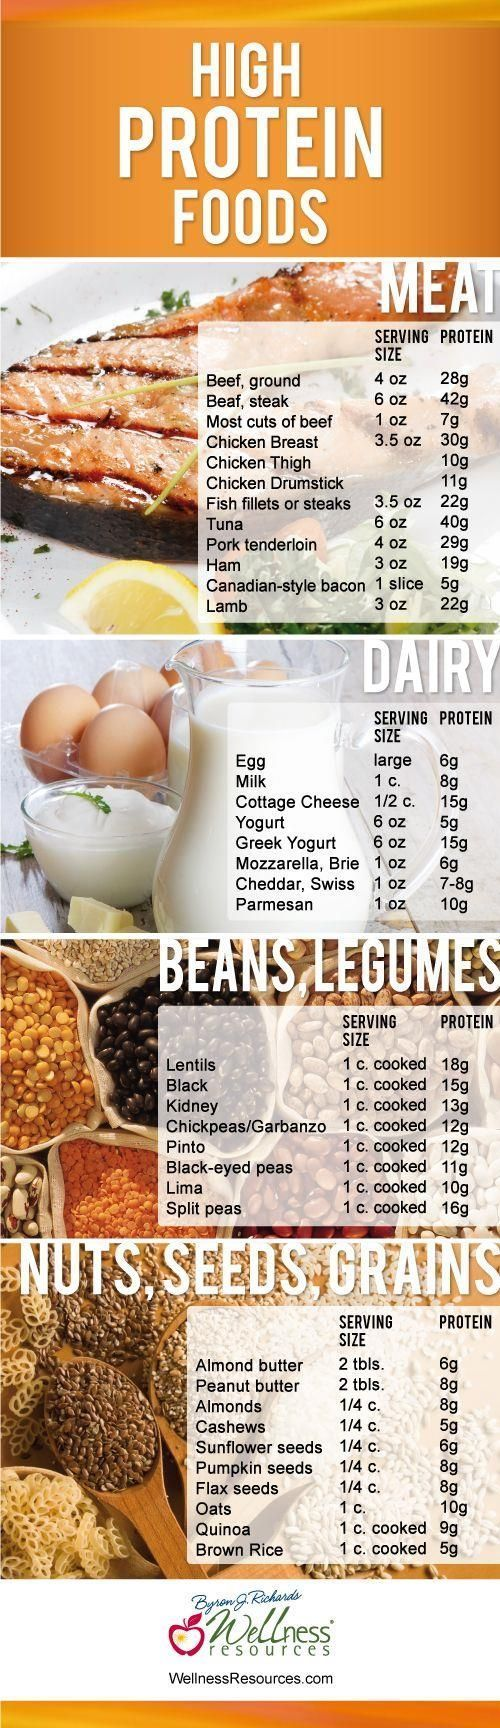 How To Build Muscle Fast, Top 7 Cheapest Sources of Protein ...